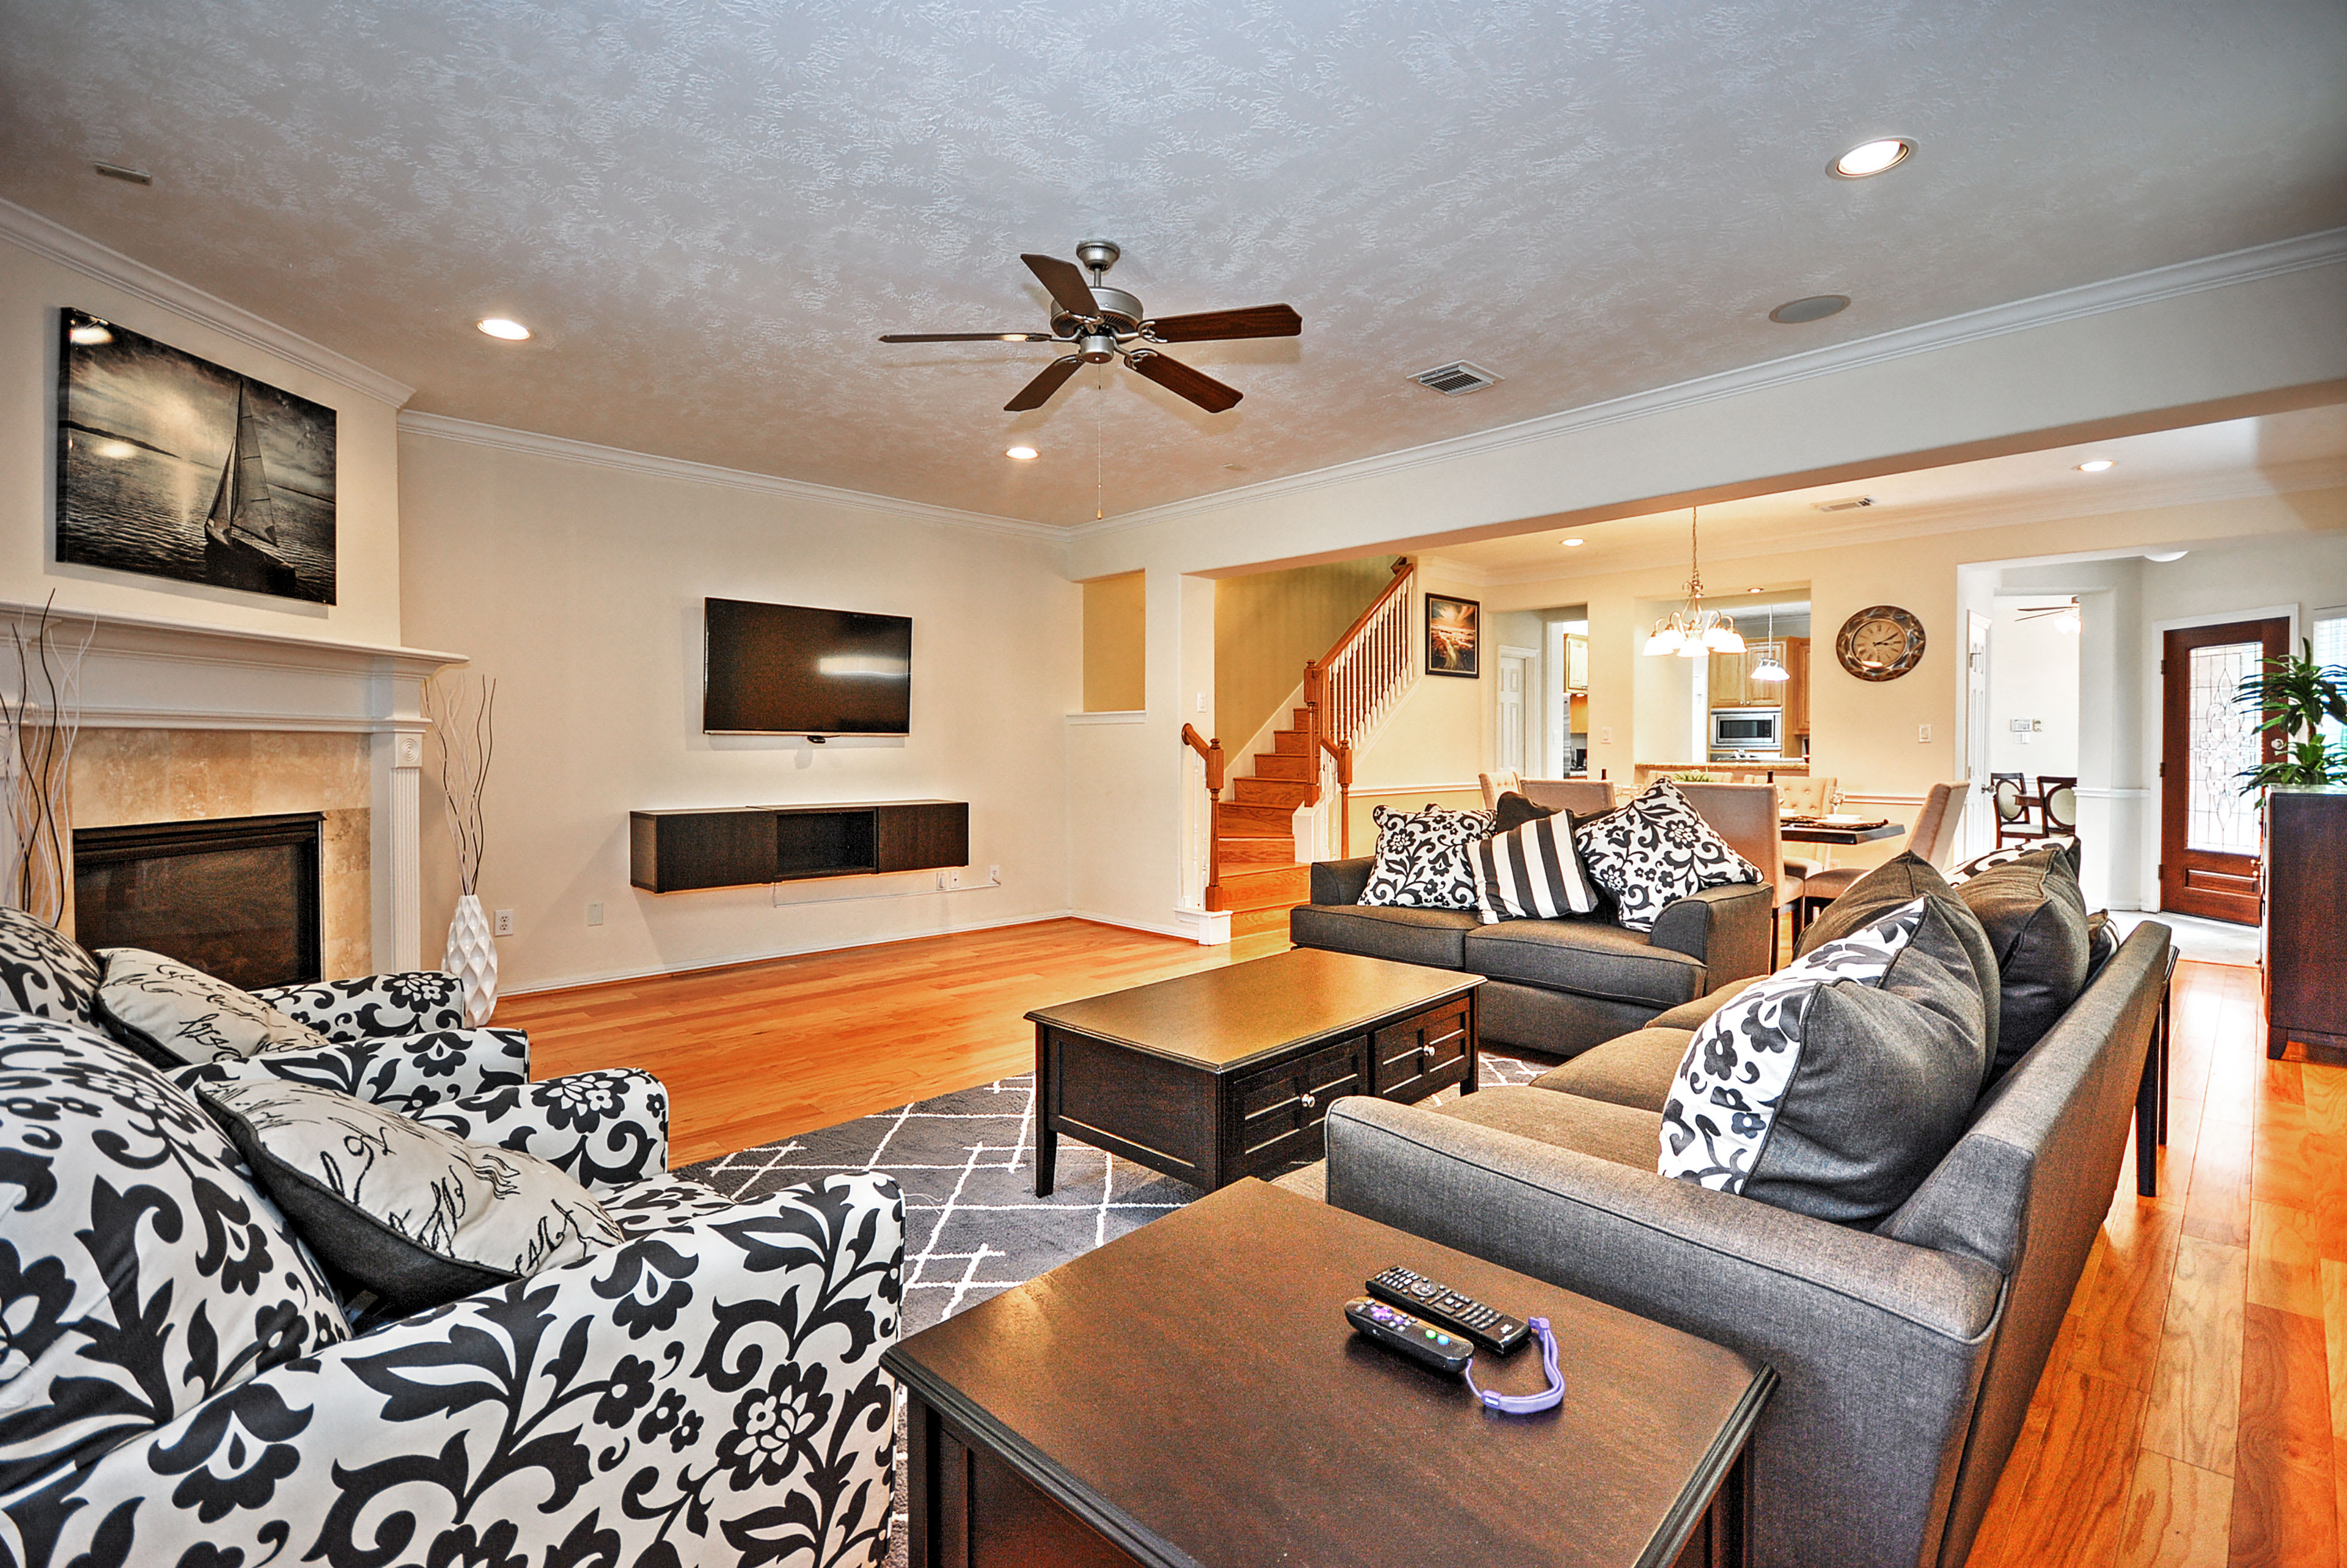 Escape to this luxurious 4-bed, 2.5-bath vacation rental townhome in Houston.